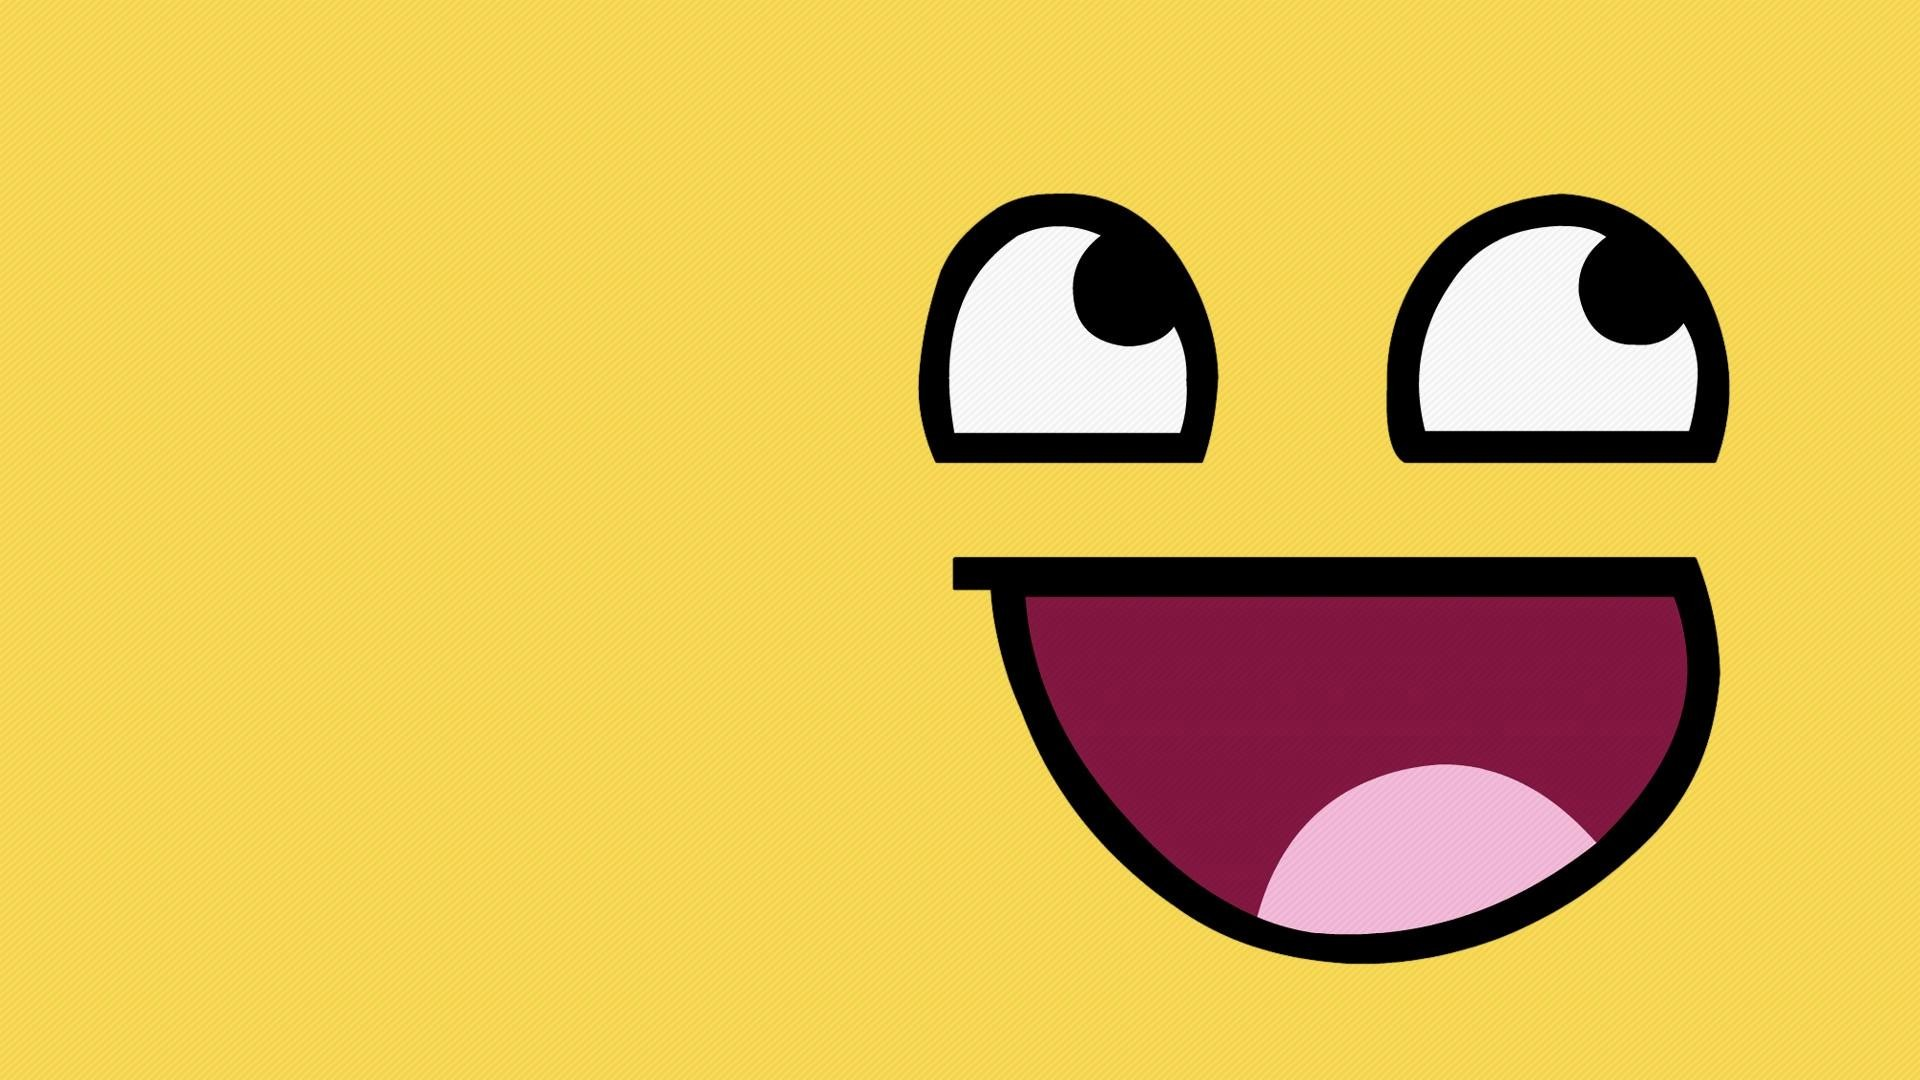 wallpaper.wiki-Free-Epic-Face-Backgrounds-PIC-WPB002876